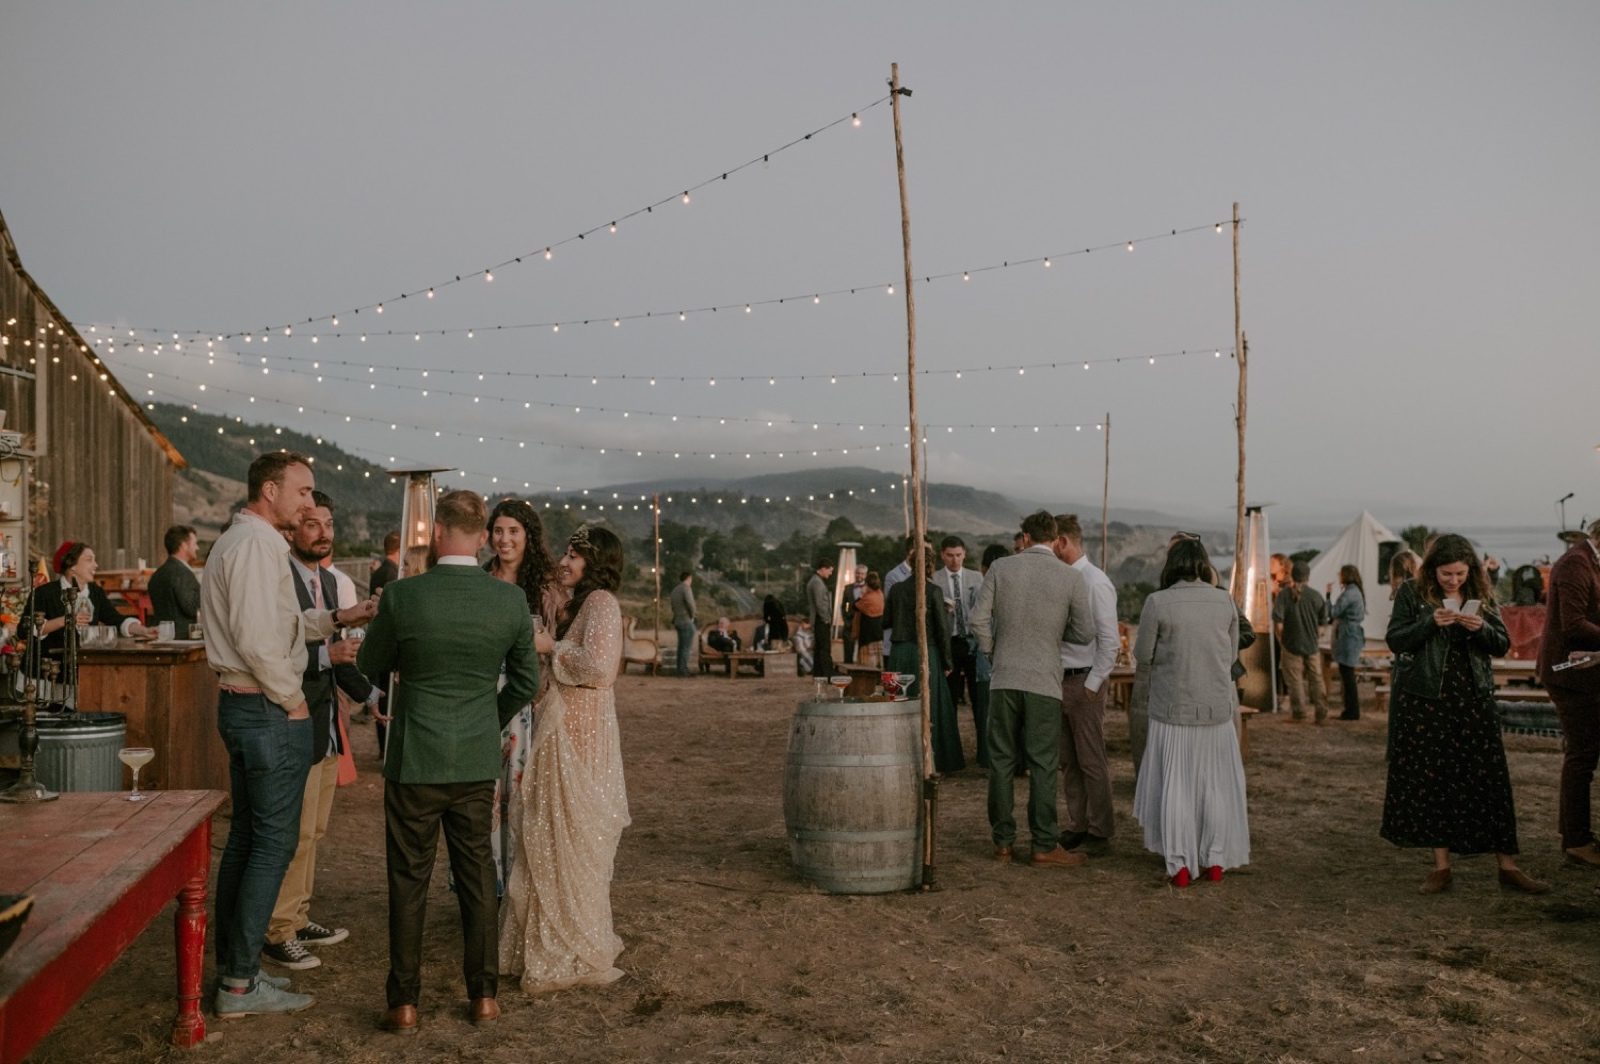 Mendocino_Wedding_Cuffeys_Cove127.JPG